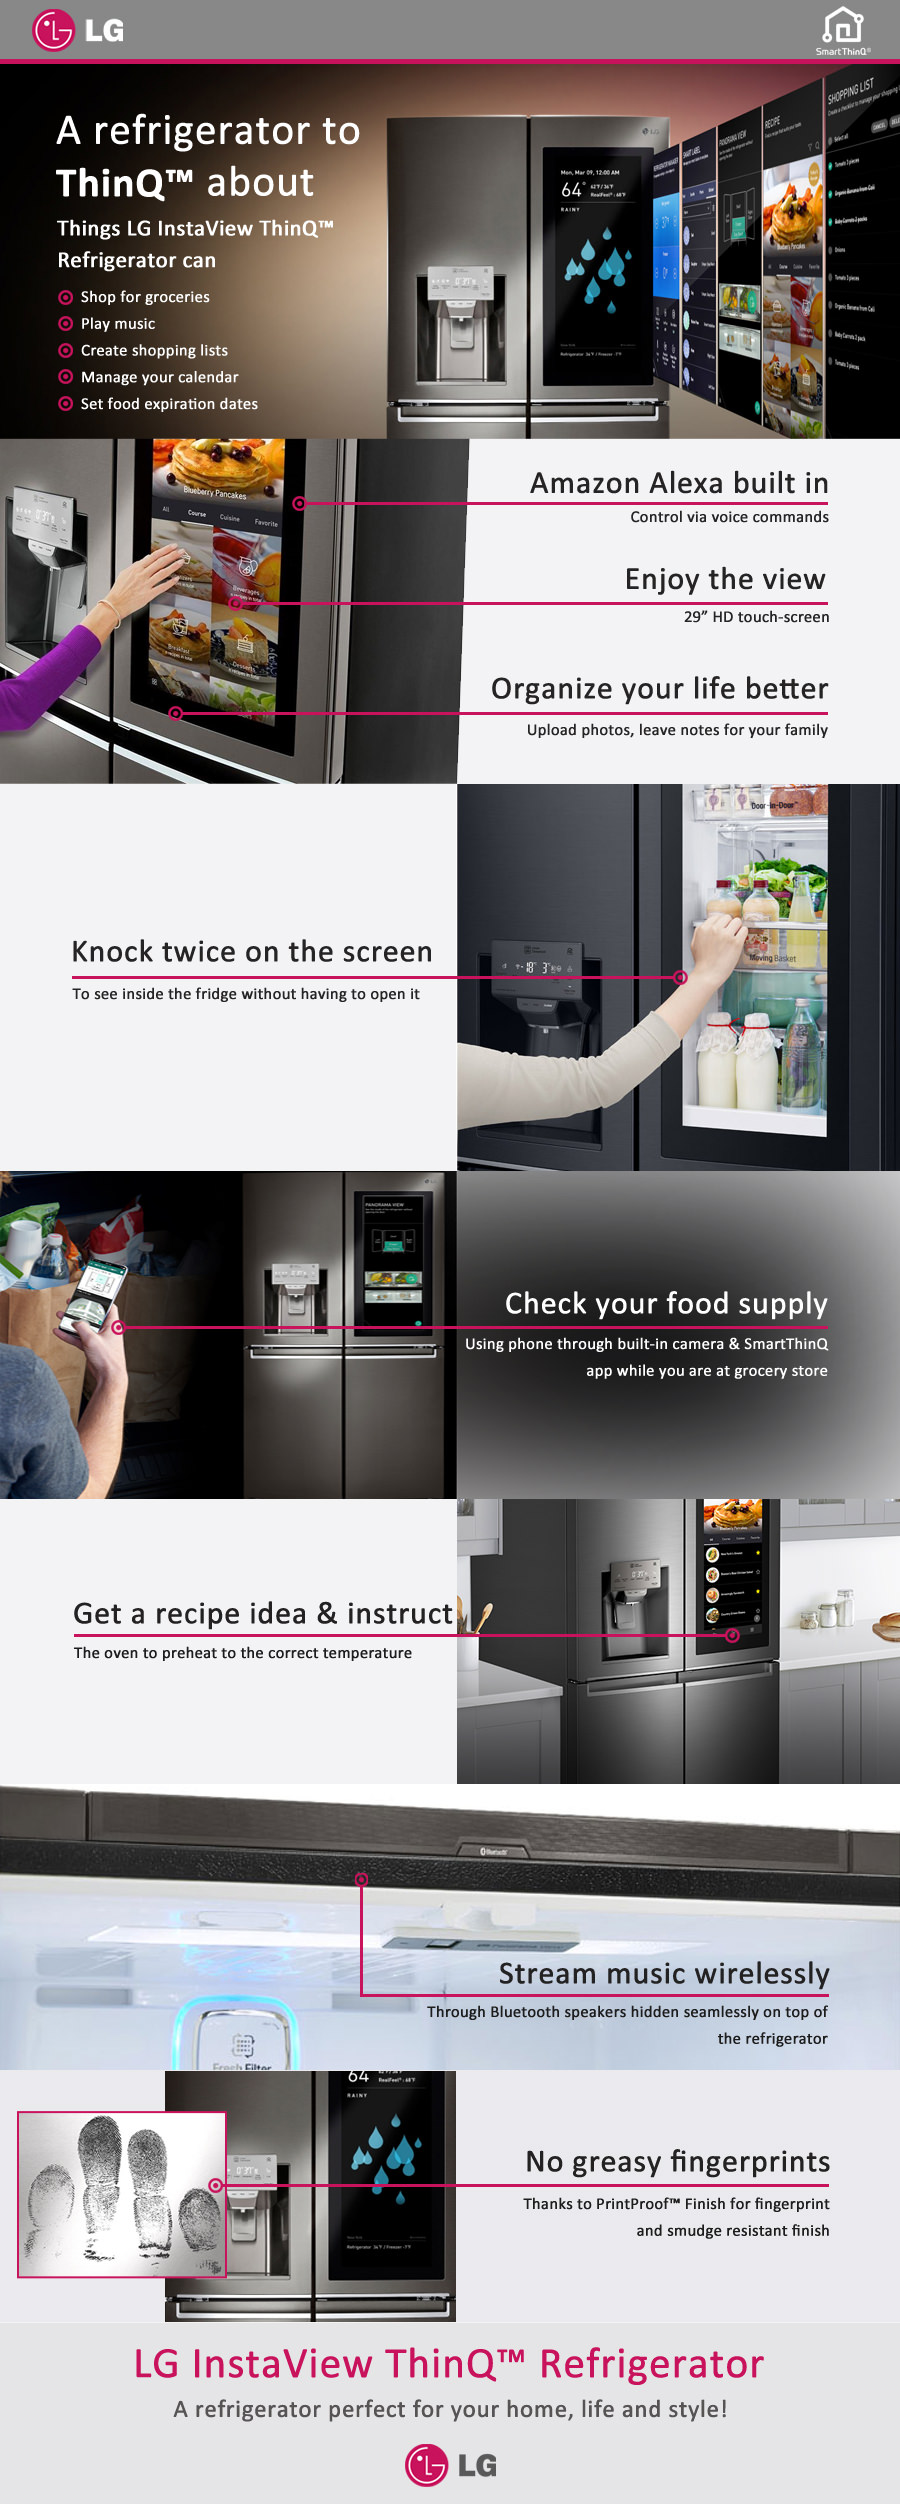 LG's New InstaView ThinQ Refrigerator with Alexa Built-In